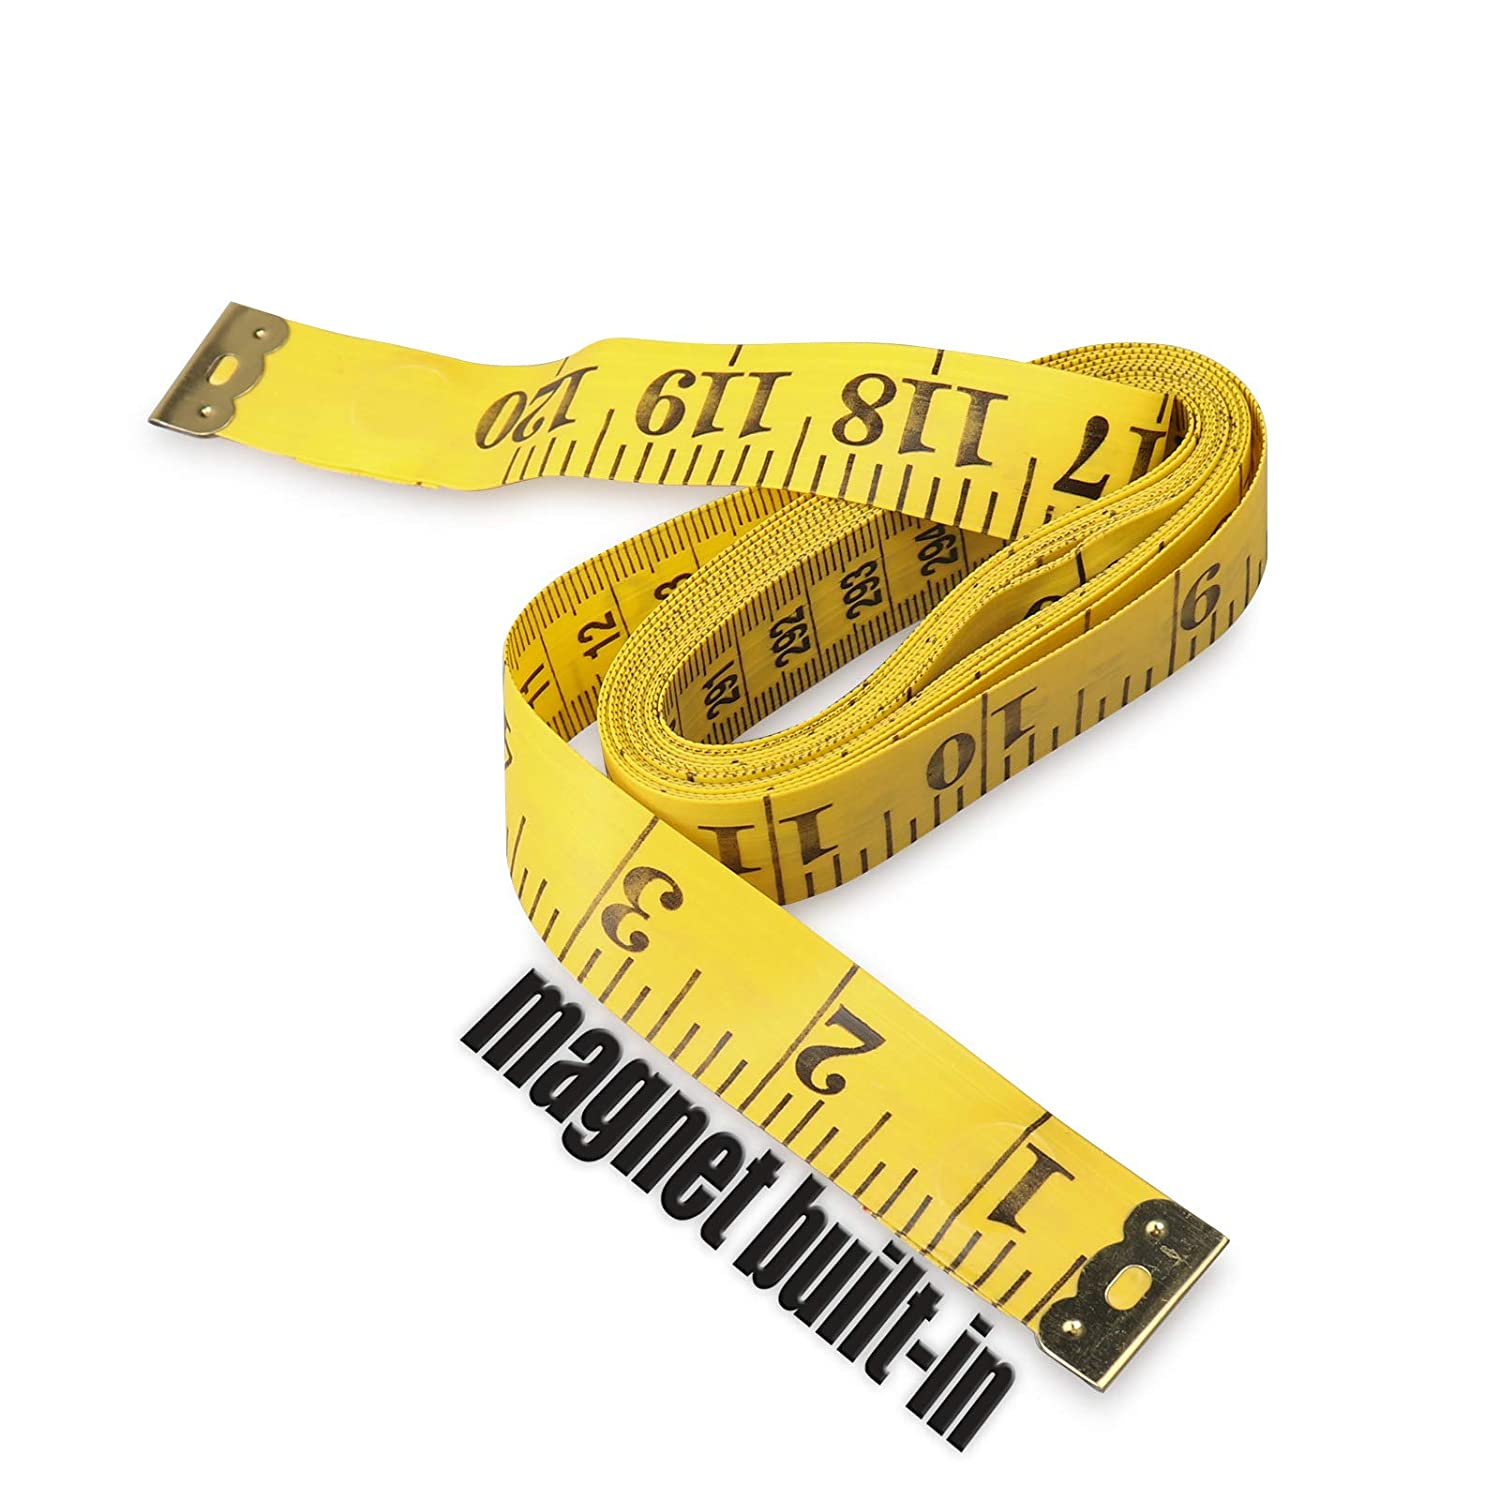 Ehdis 120 Inch 3 Meter Soft Tape Measure with Magnetic Tip, Flexible  Magnetic Measure Tape for Auto Vinyl Wrap Measuring Tailor Sewing